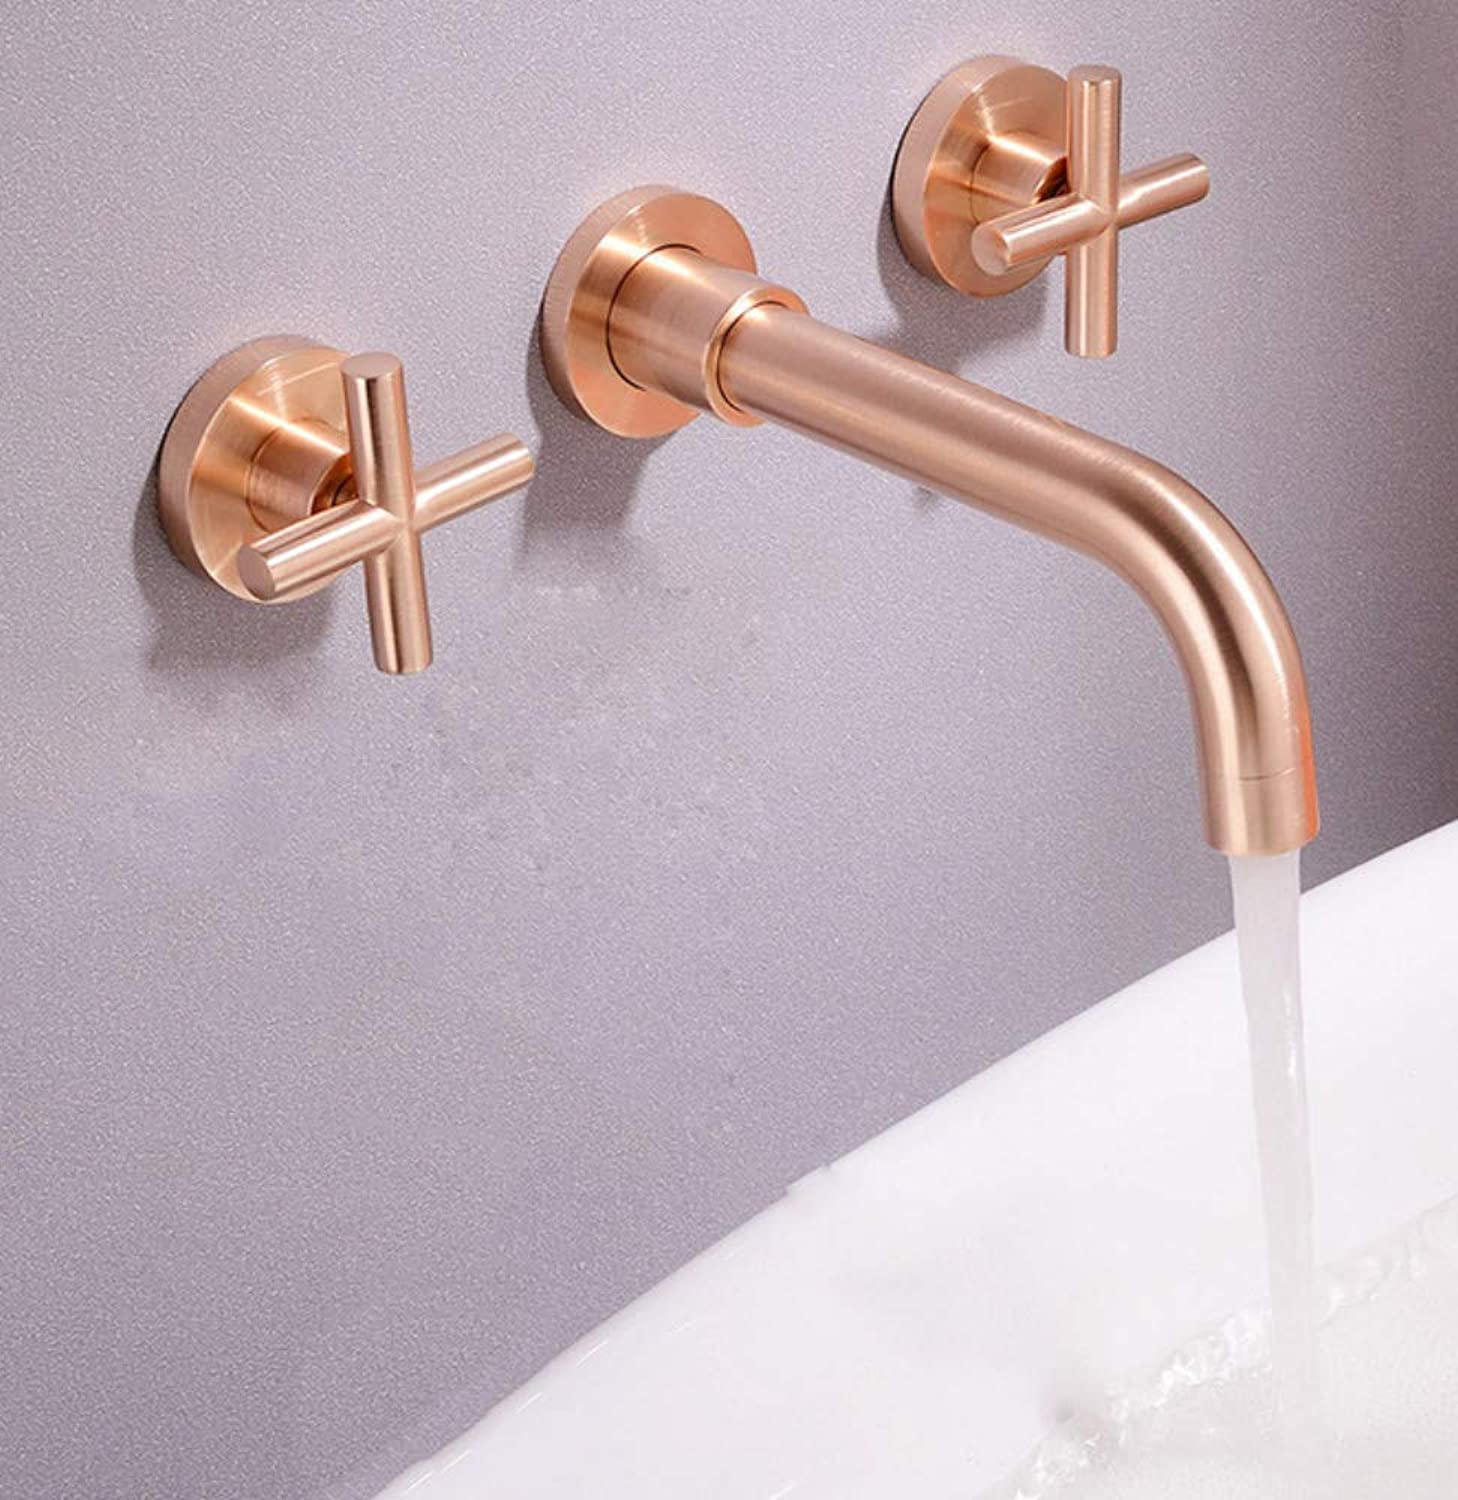 redOOY Bathroom Sink Taps Taps Faucet Basin Faucet copper gold concealed hot and cold water basin faucet brushed gold double double faucet